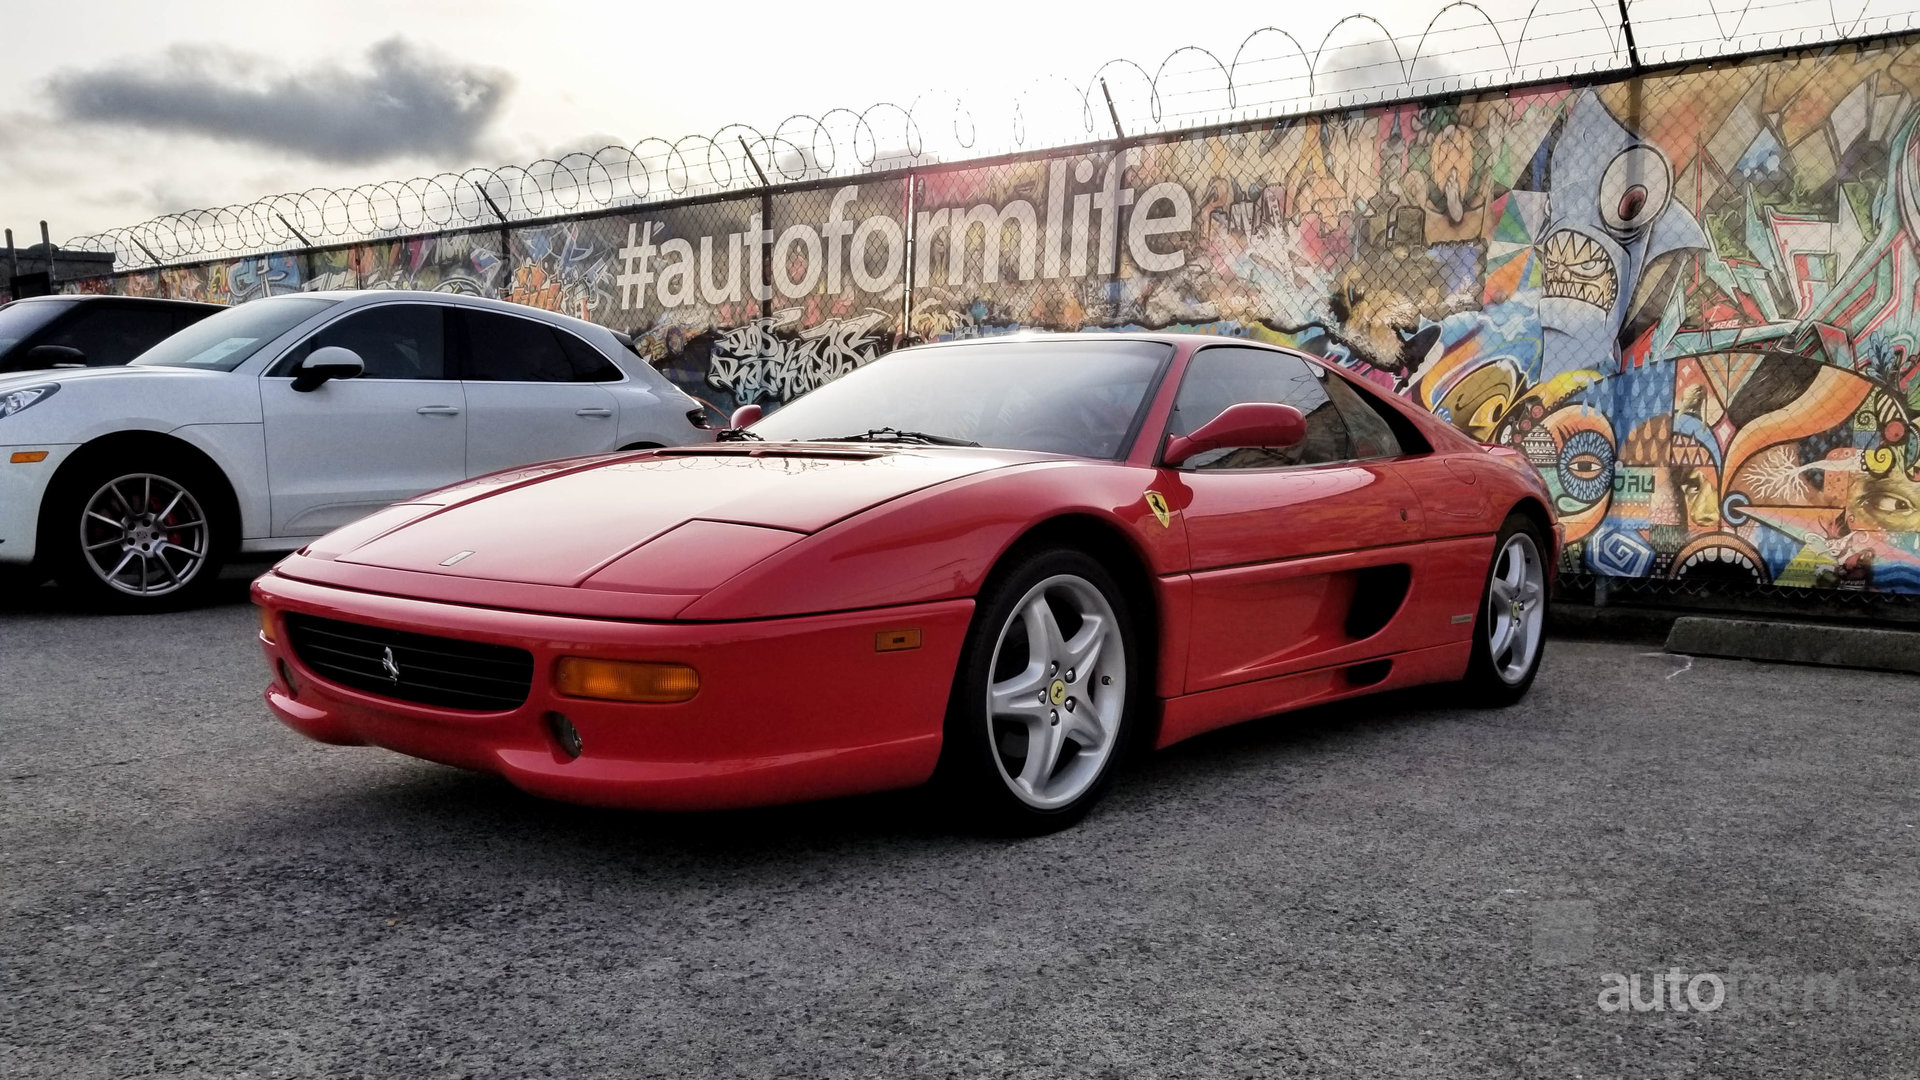 11927be40c4a5 hd 1999 ferrari 355 f1 berlinetta